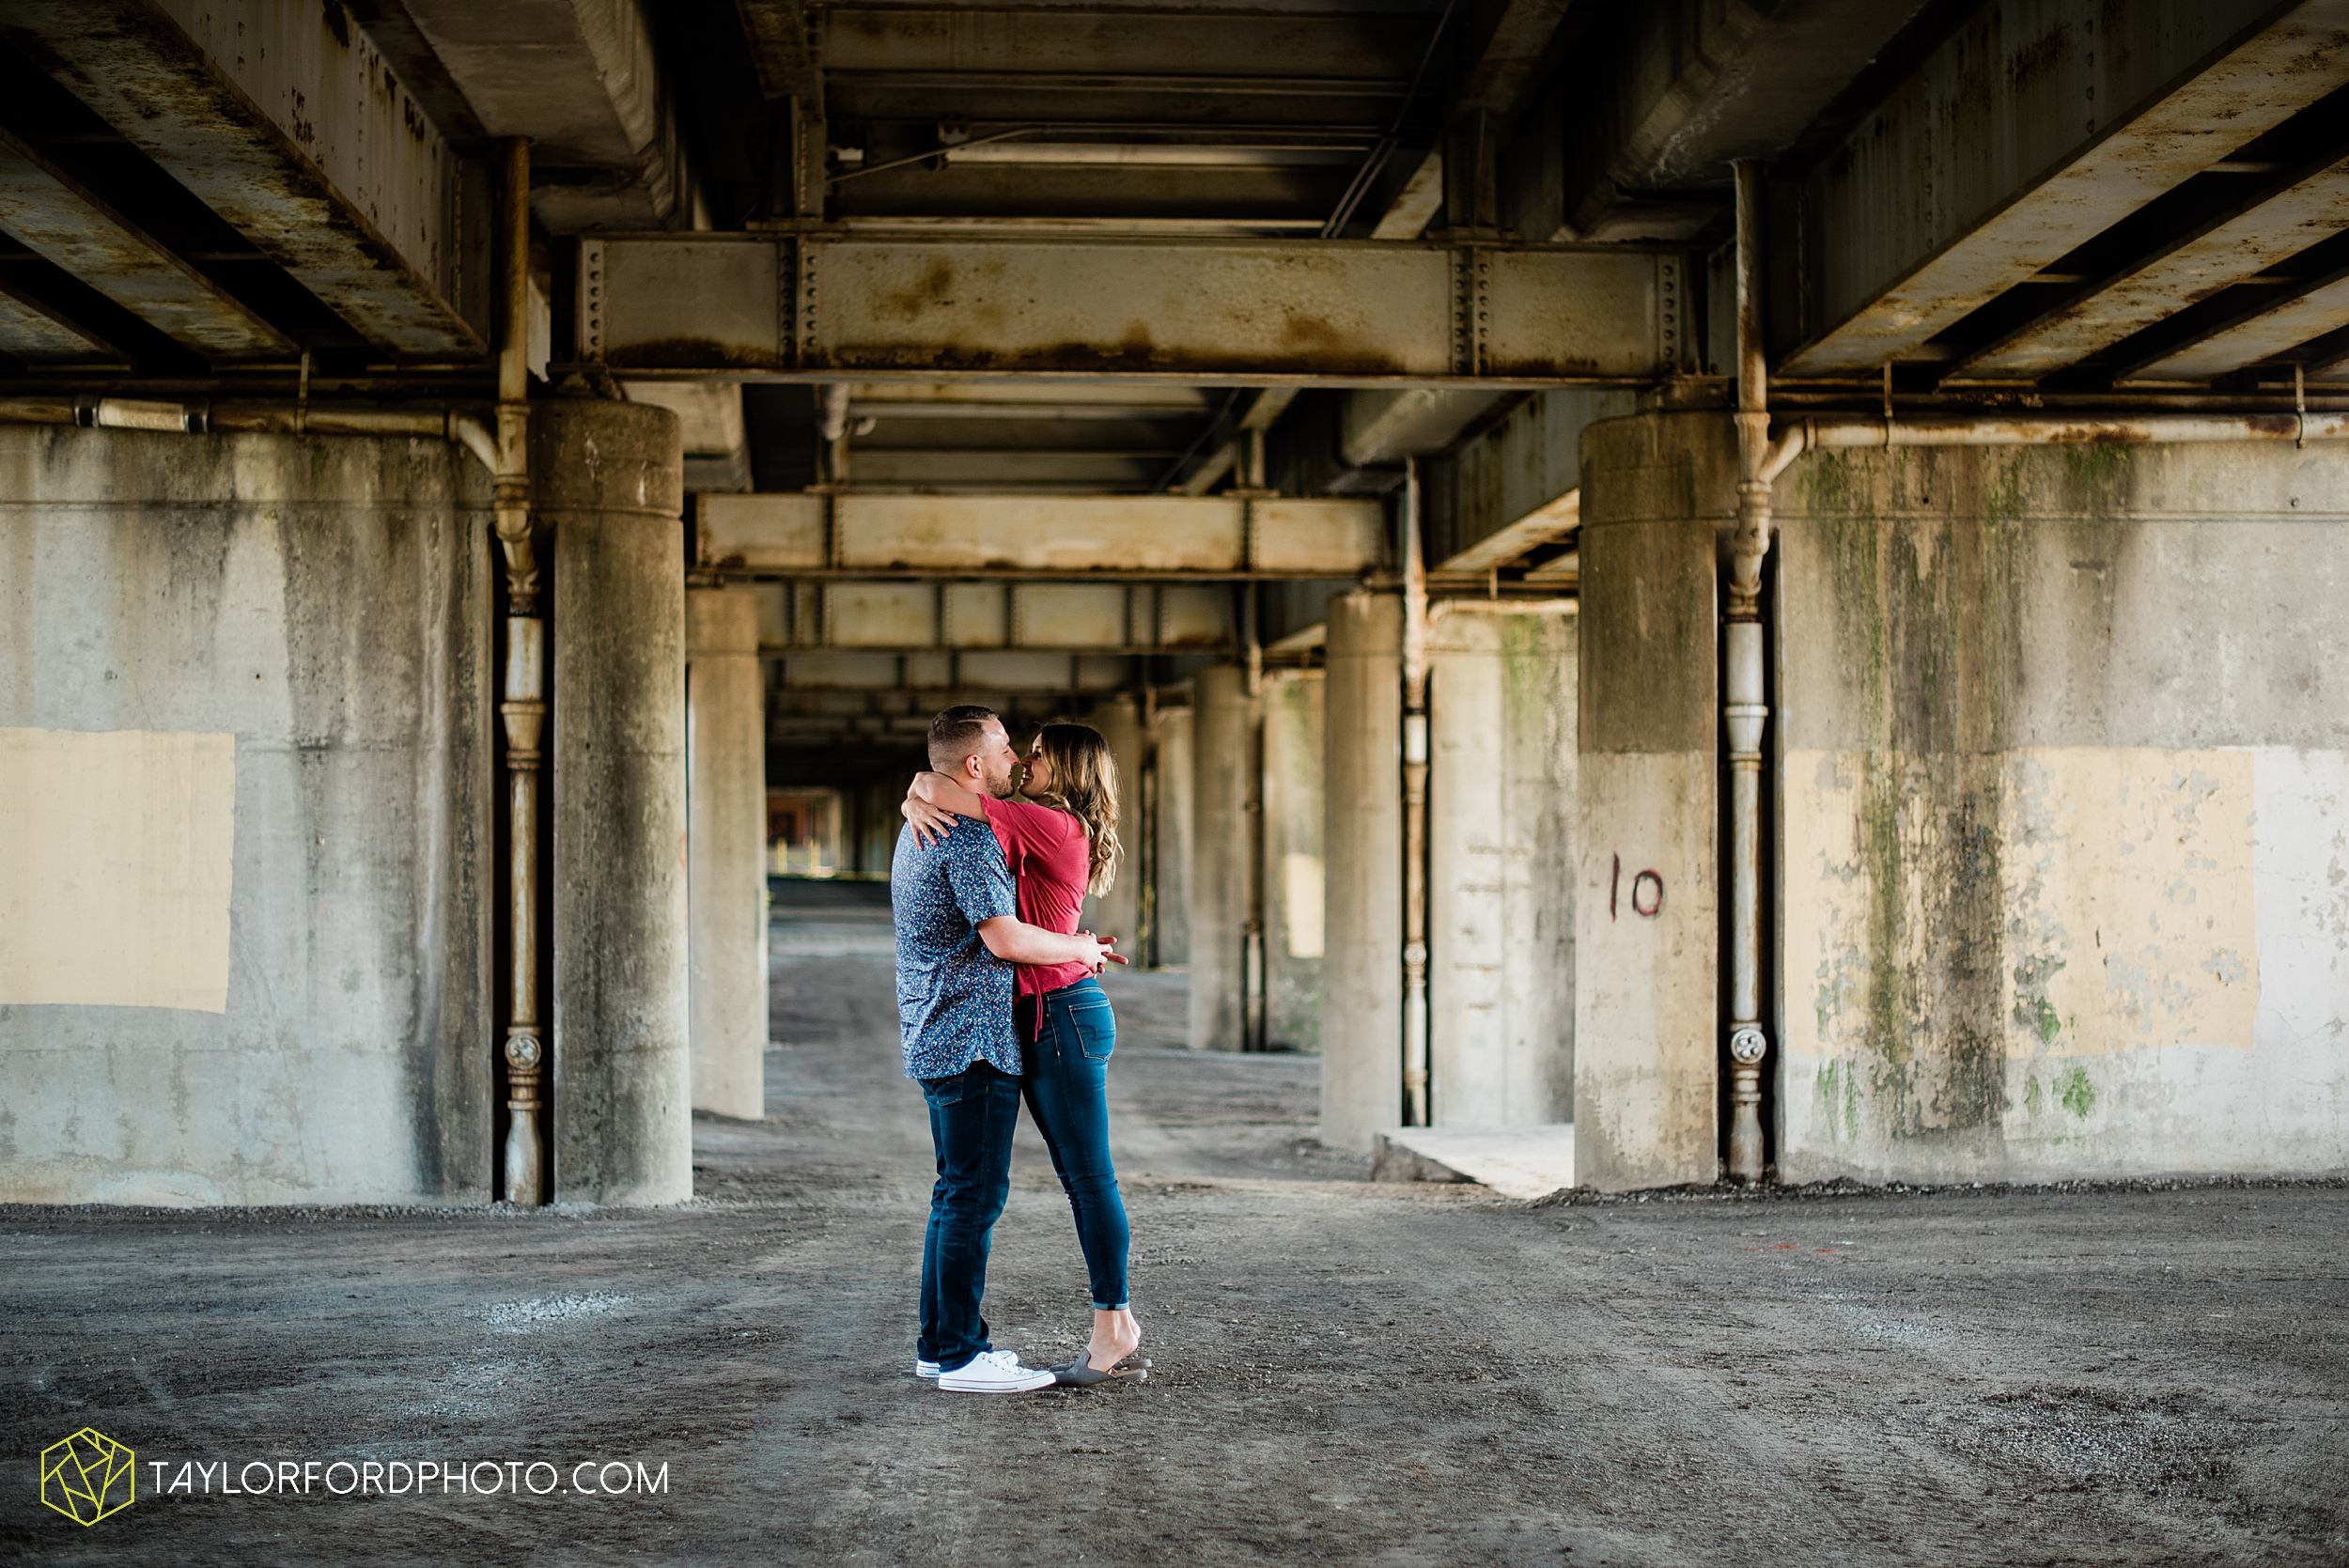 aly-taylor-downtown-fort-wayne-indiana-spring-engagement-photographer-photography-taylor-ford-hirschy-photographer_2592.jpg